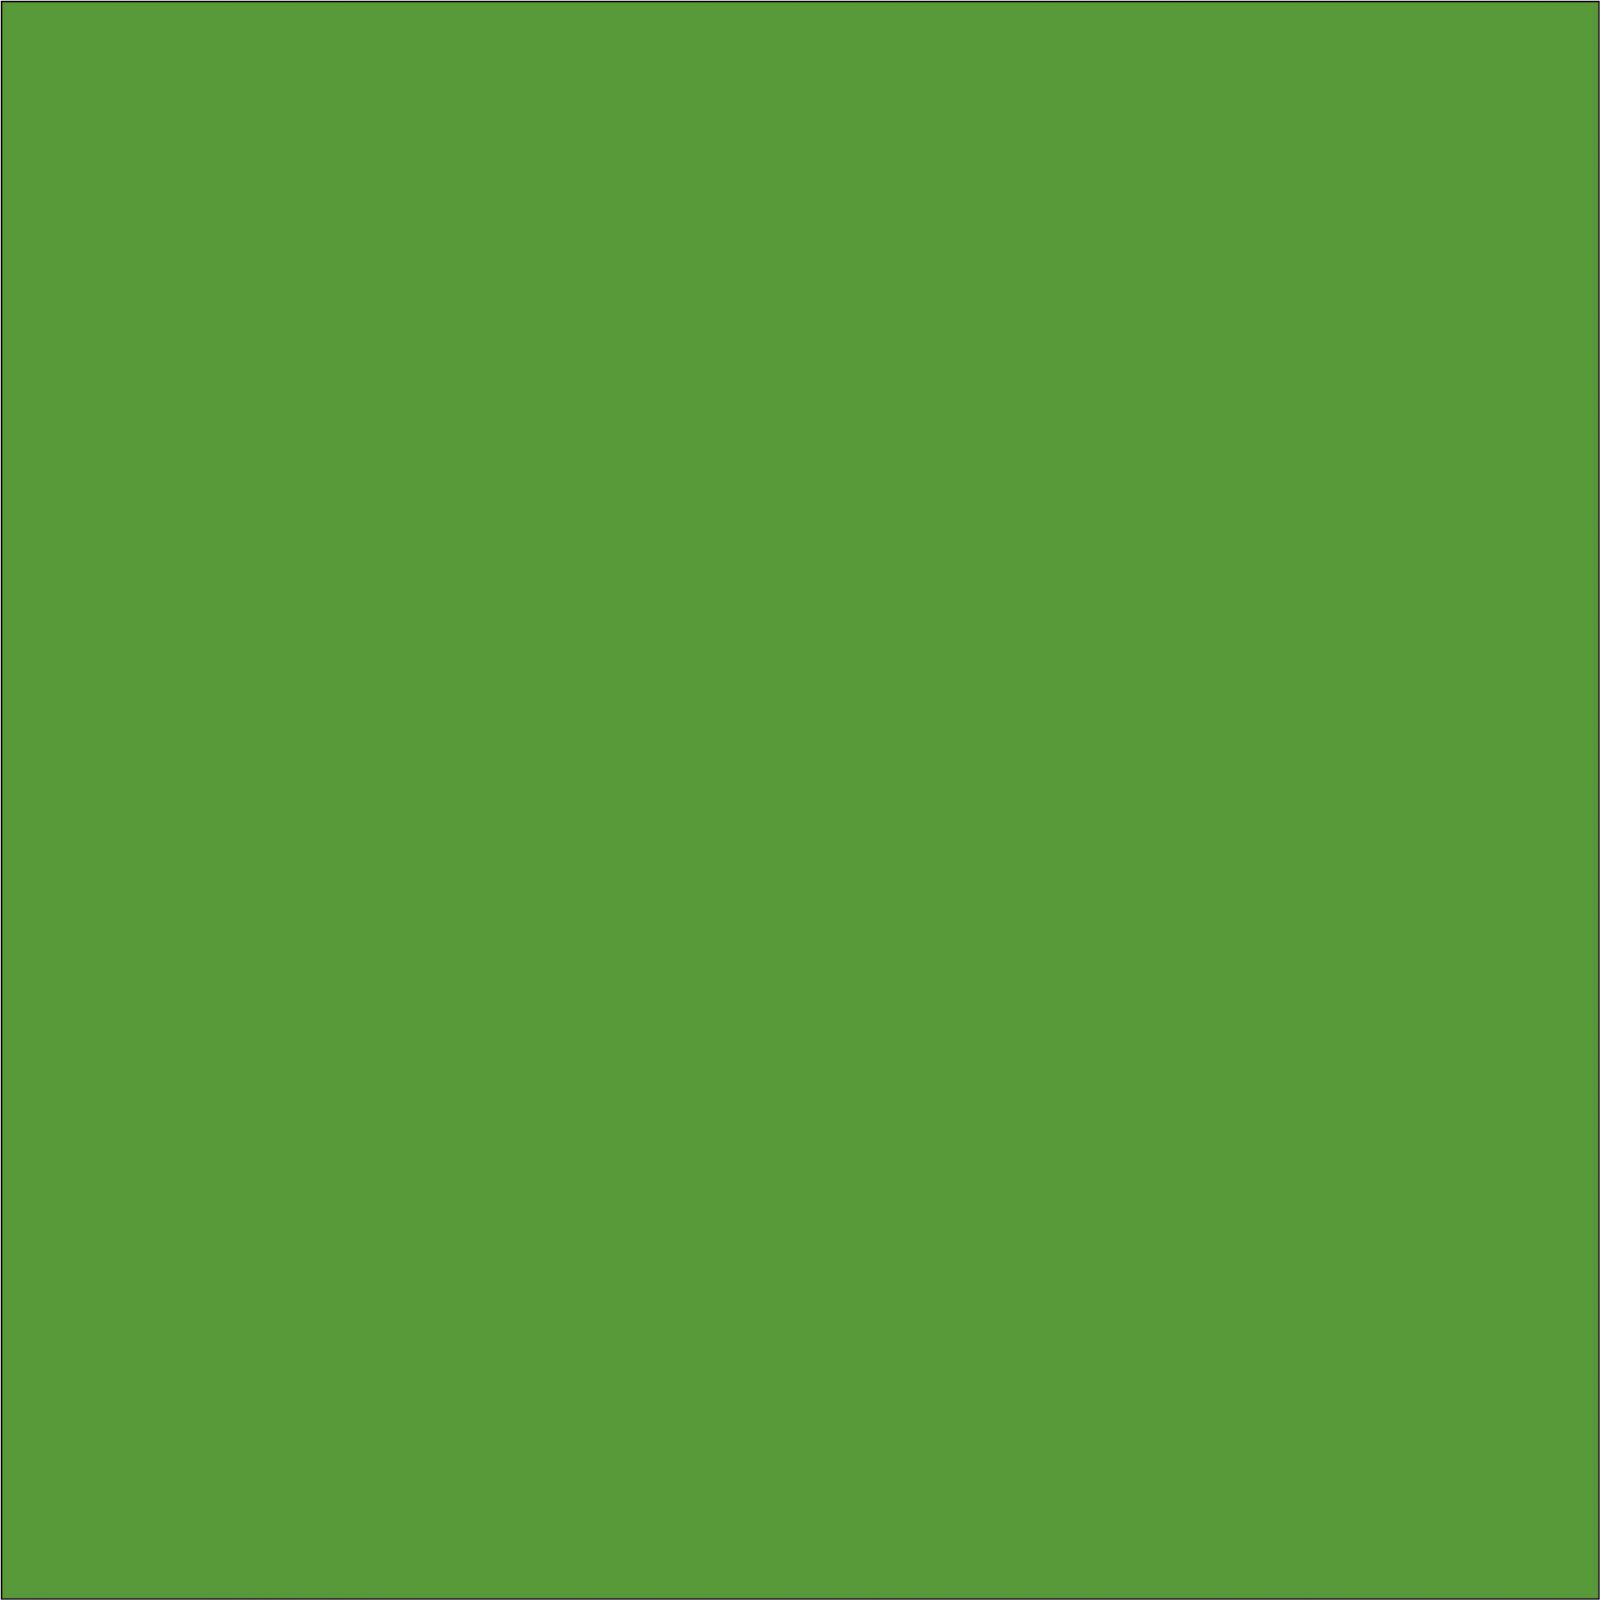 Colour swatch of Bright Green